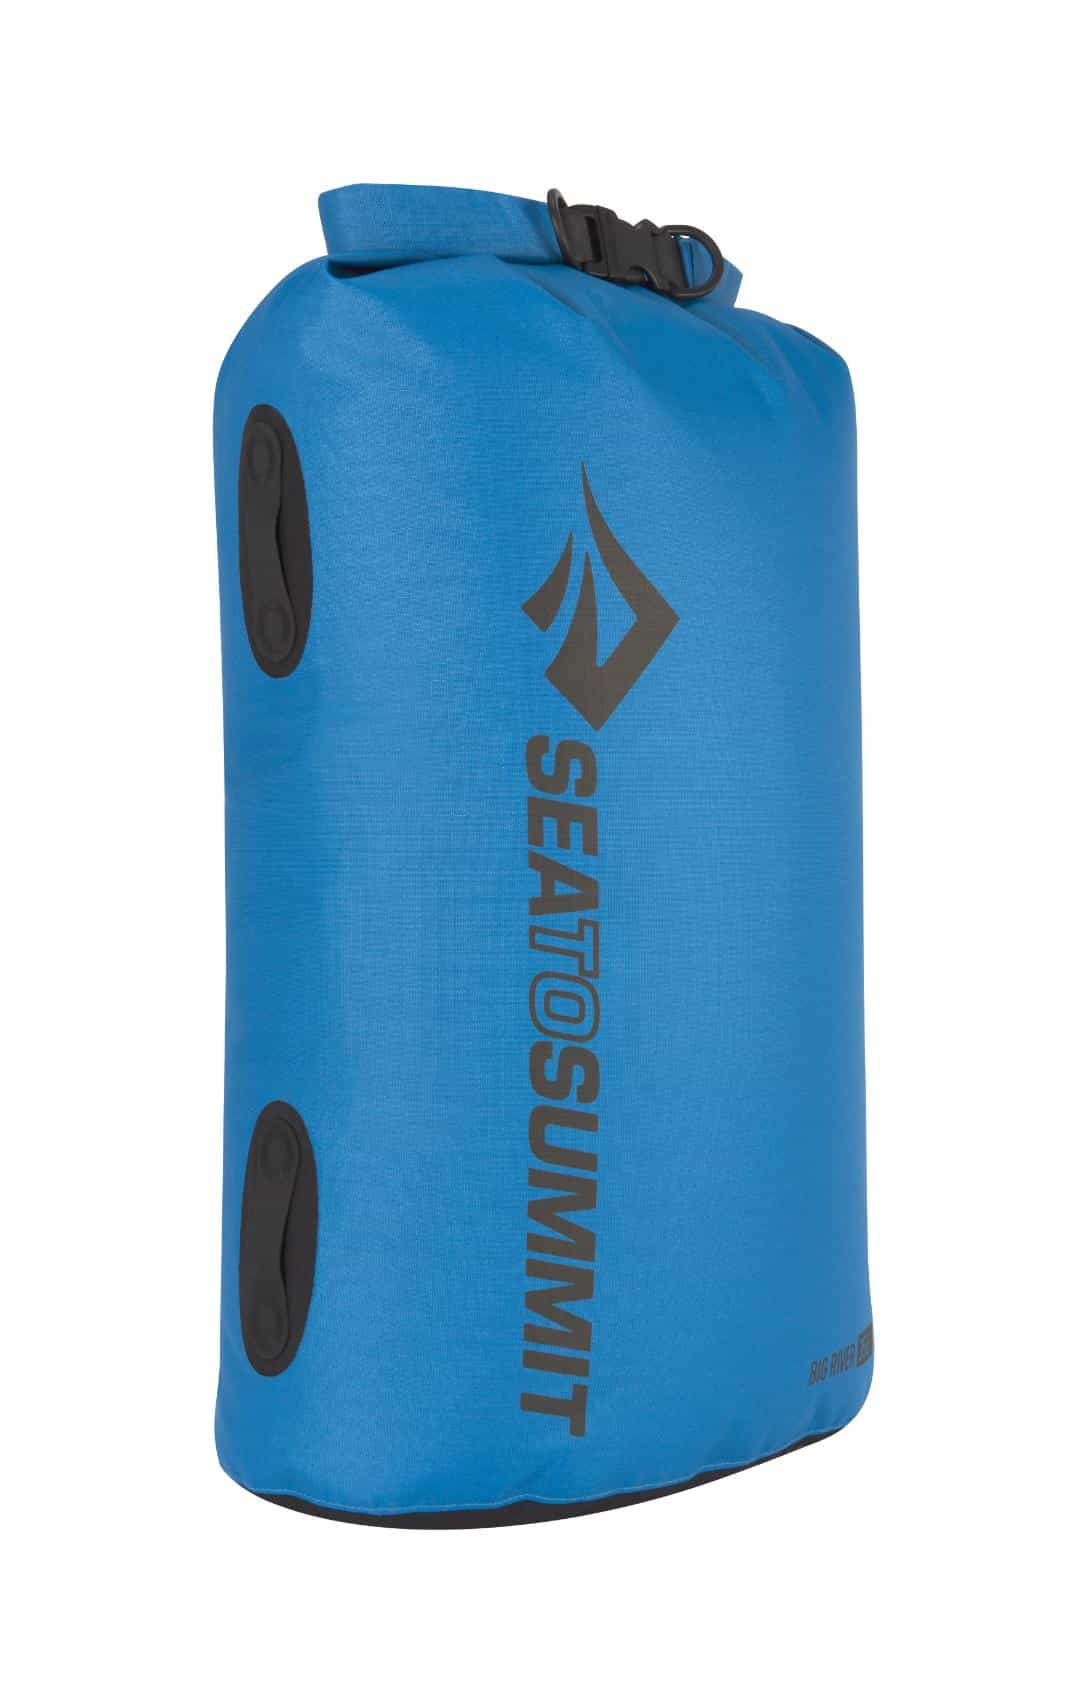 Sea to Summit-Big River Dry Bag 35L